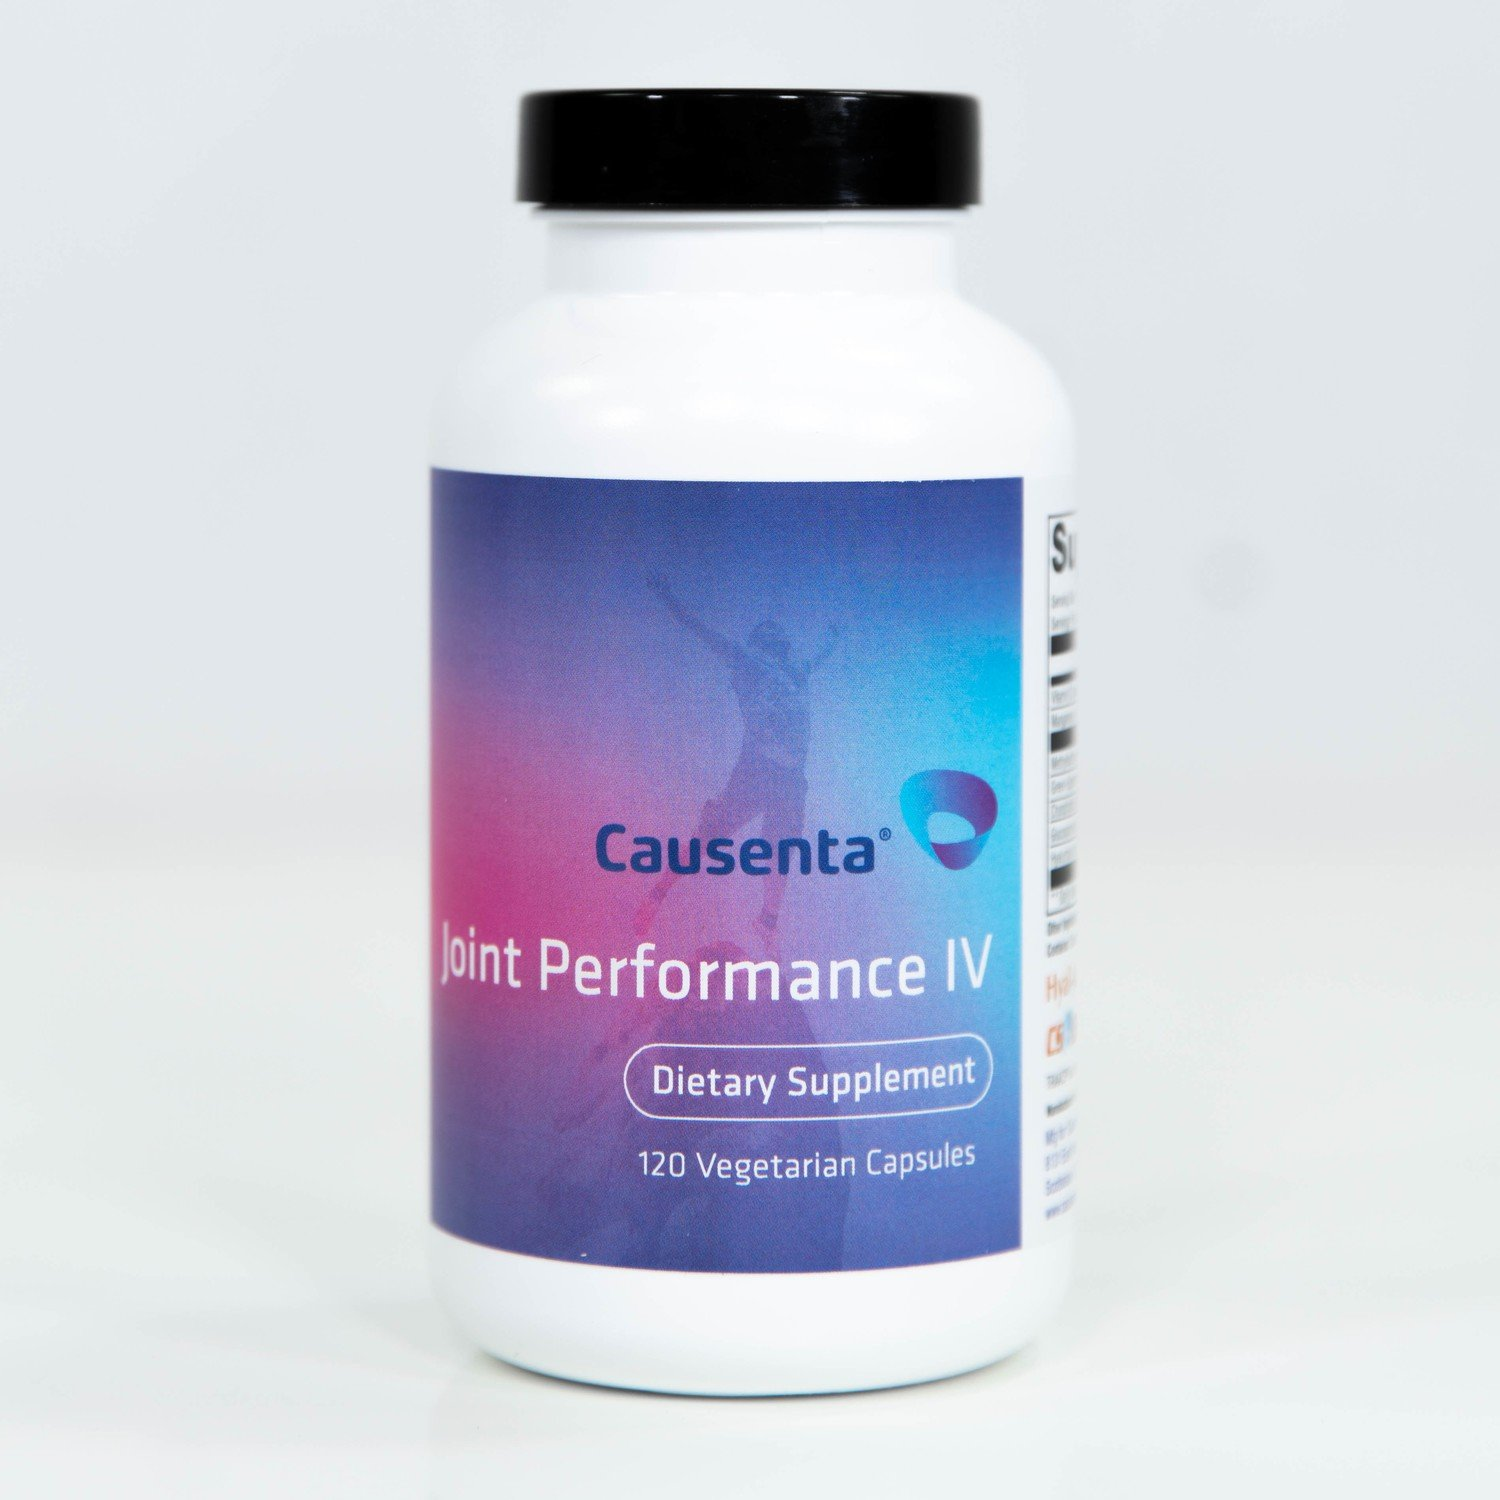 Joint Performance IV -MSM, Green-Lipped Mussel and Vitamin C